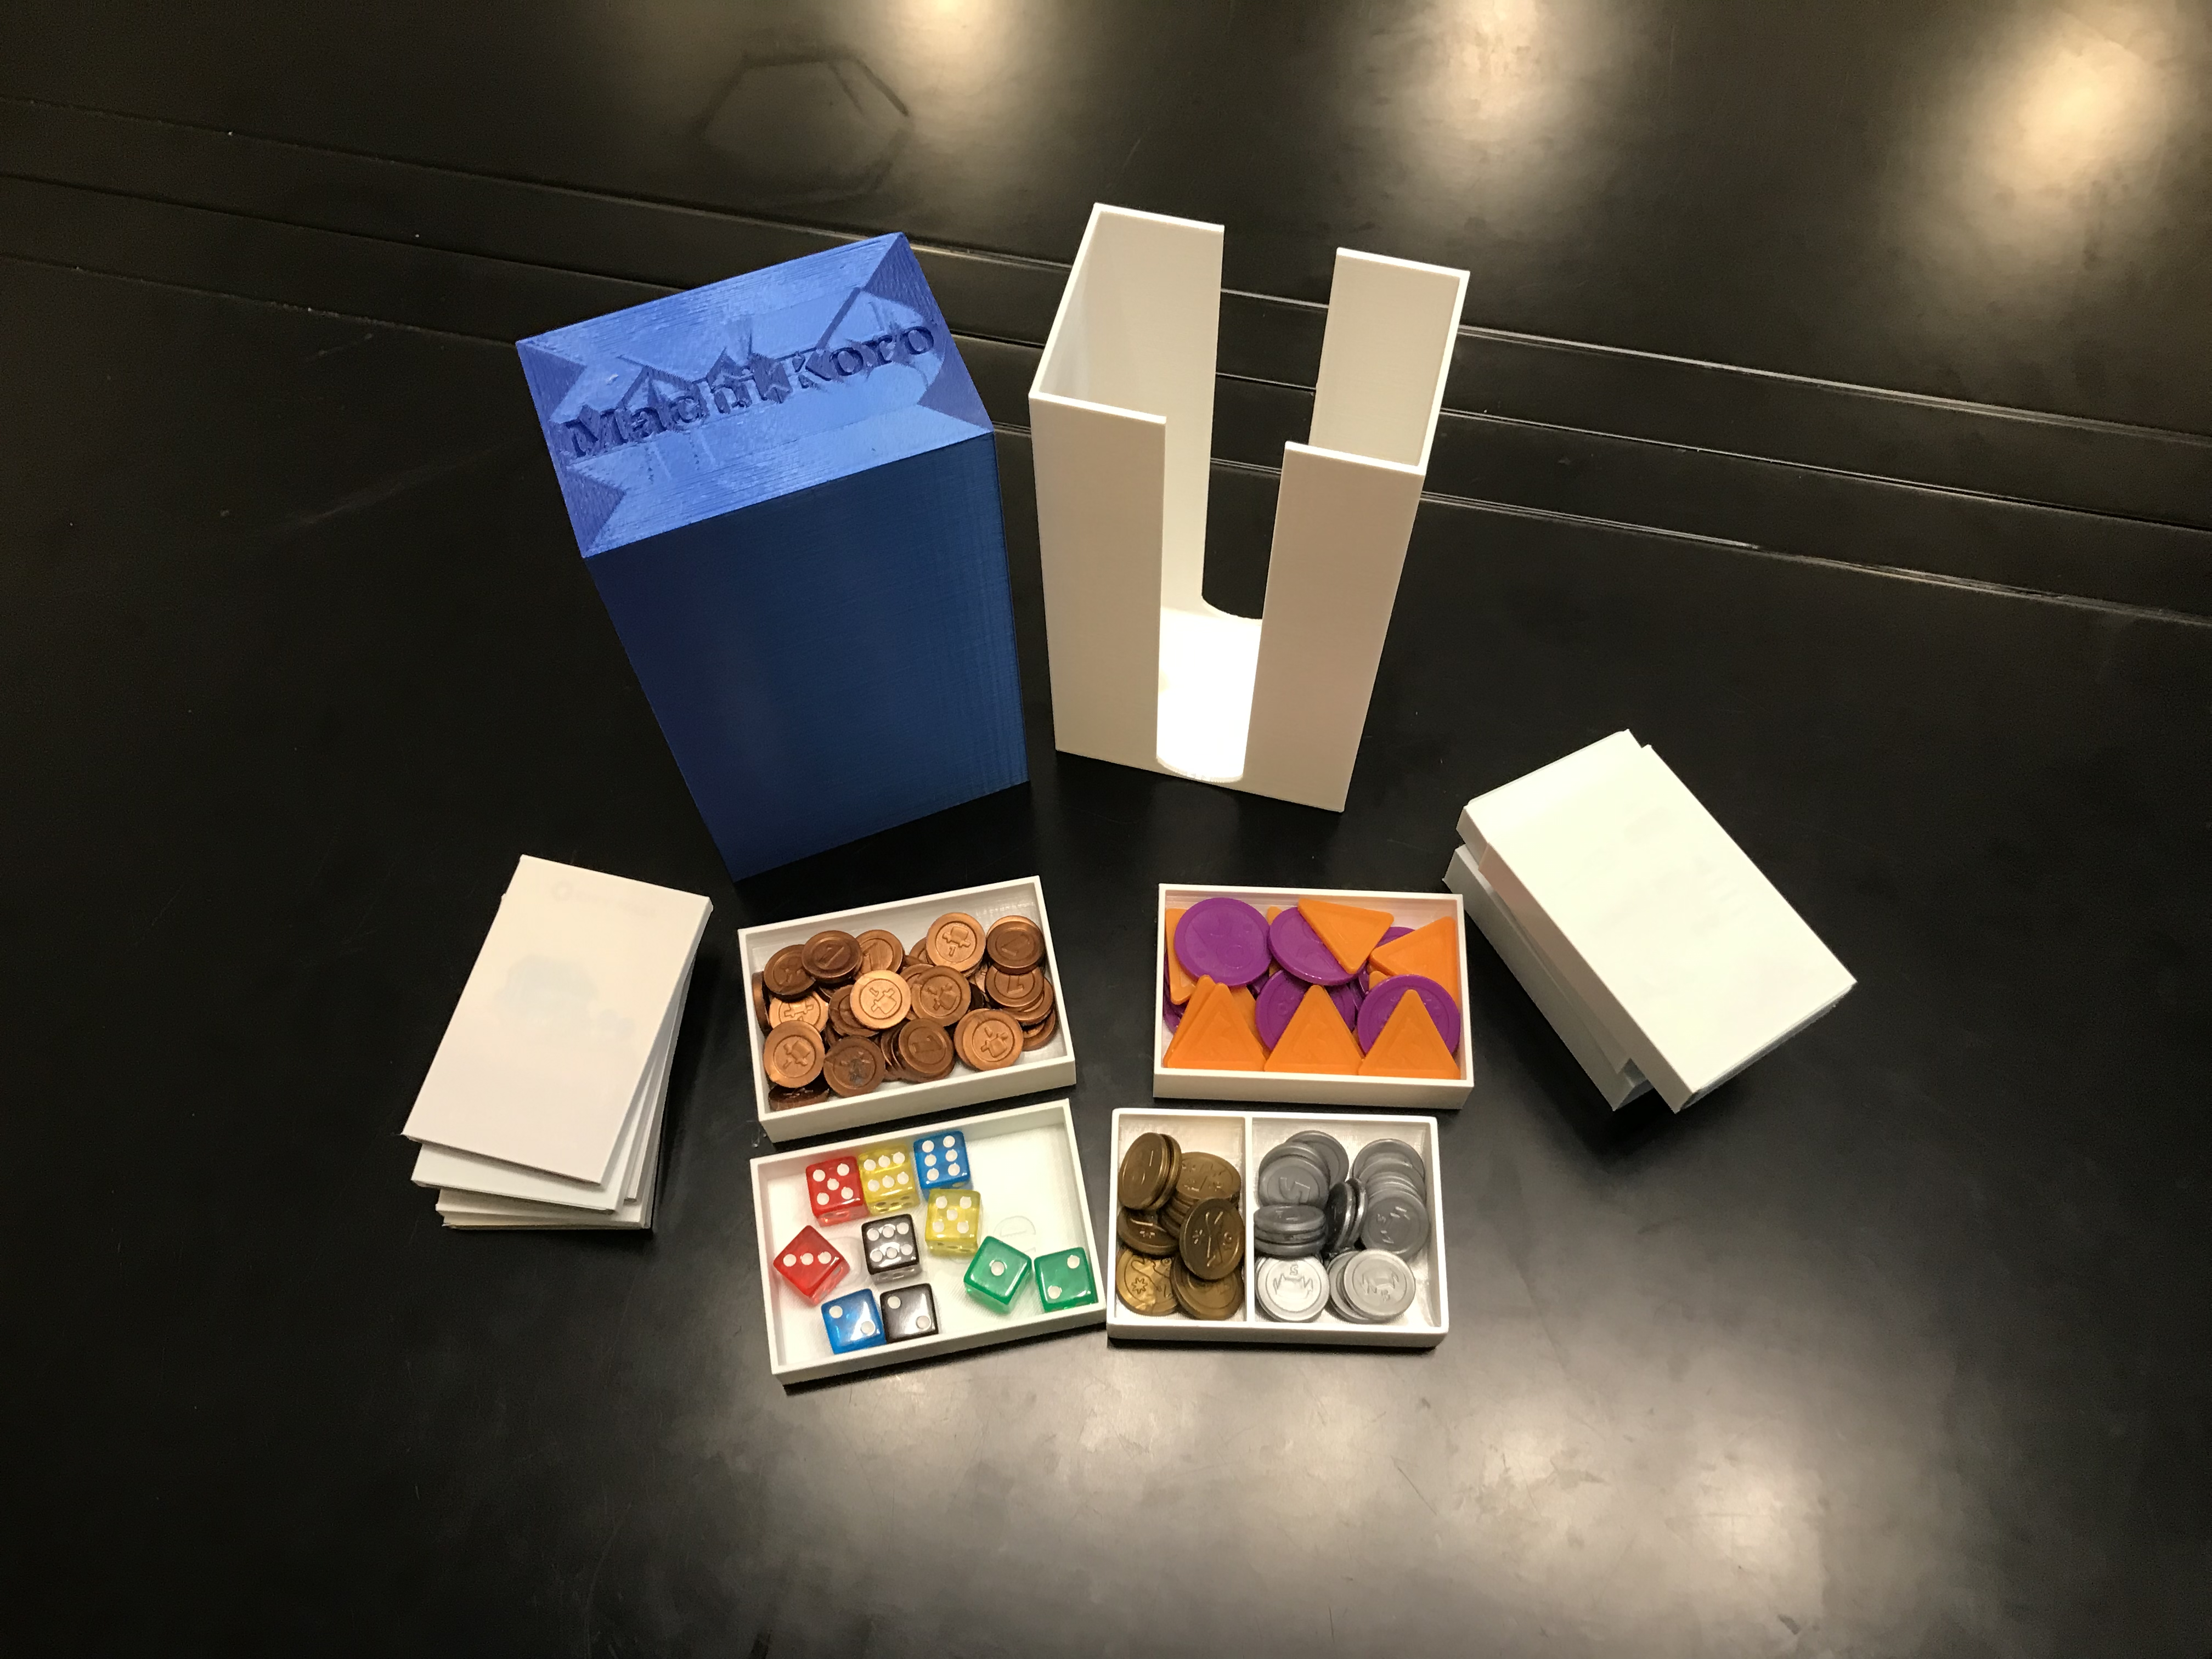 2019-09-23_11.34.14.jpg Download free STL file Machi Koro 5th Anniversary with Expansions • Model to 3D print, Hardcore3D